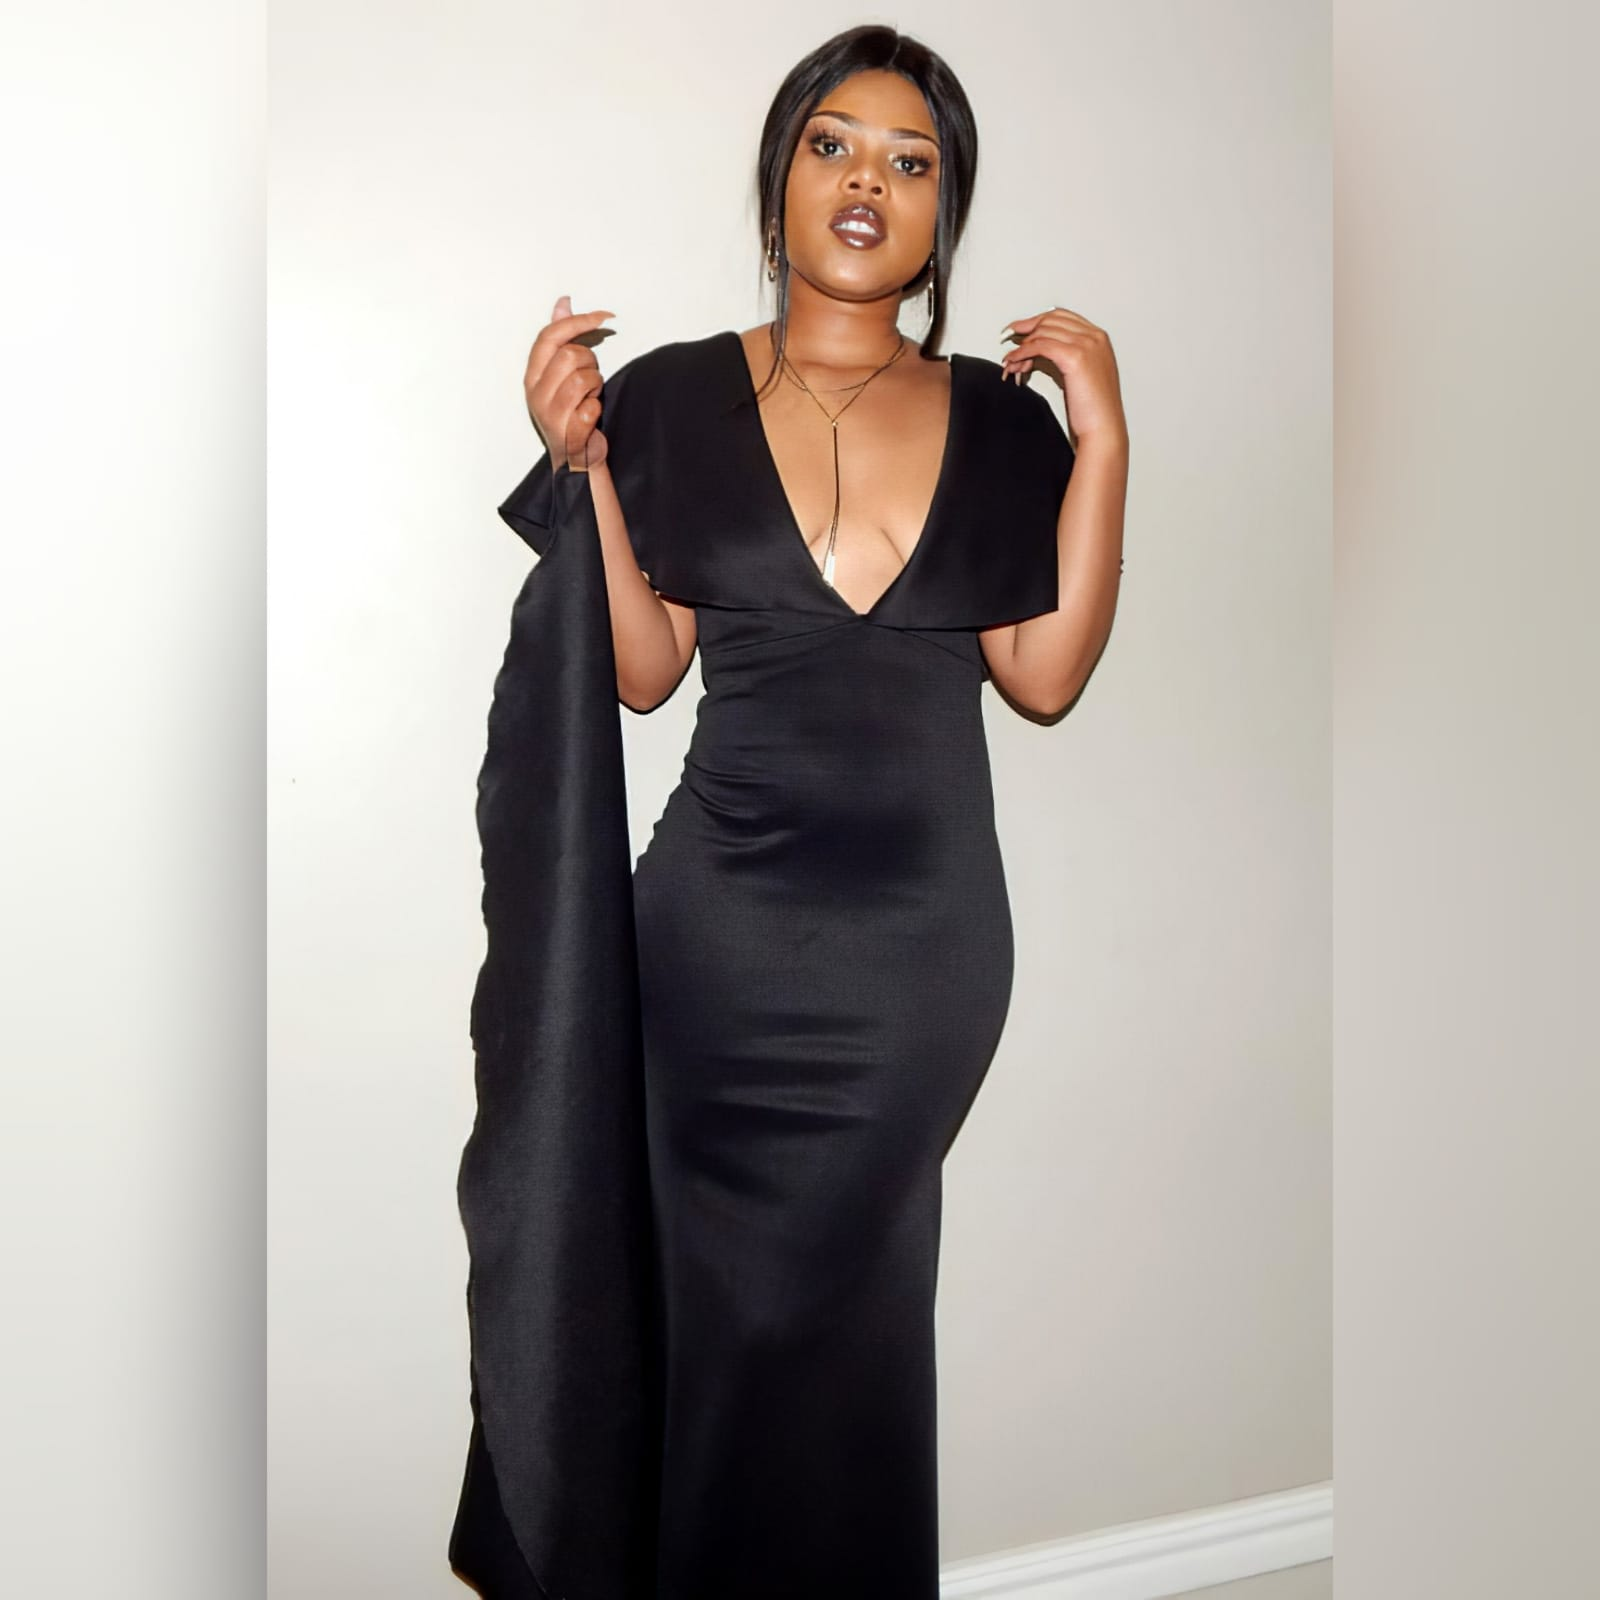 Black soft mermaid simple elegant evening dress 5 black soft mermaid simple elegant evening dress, made for prom night. With a plunging neckline, naked back, wide loose sleeves effect and a train